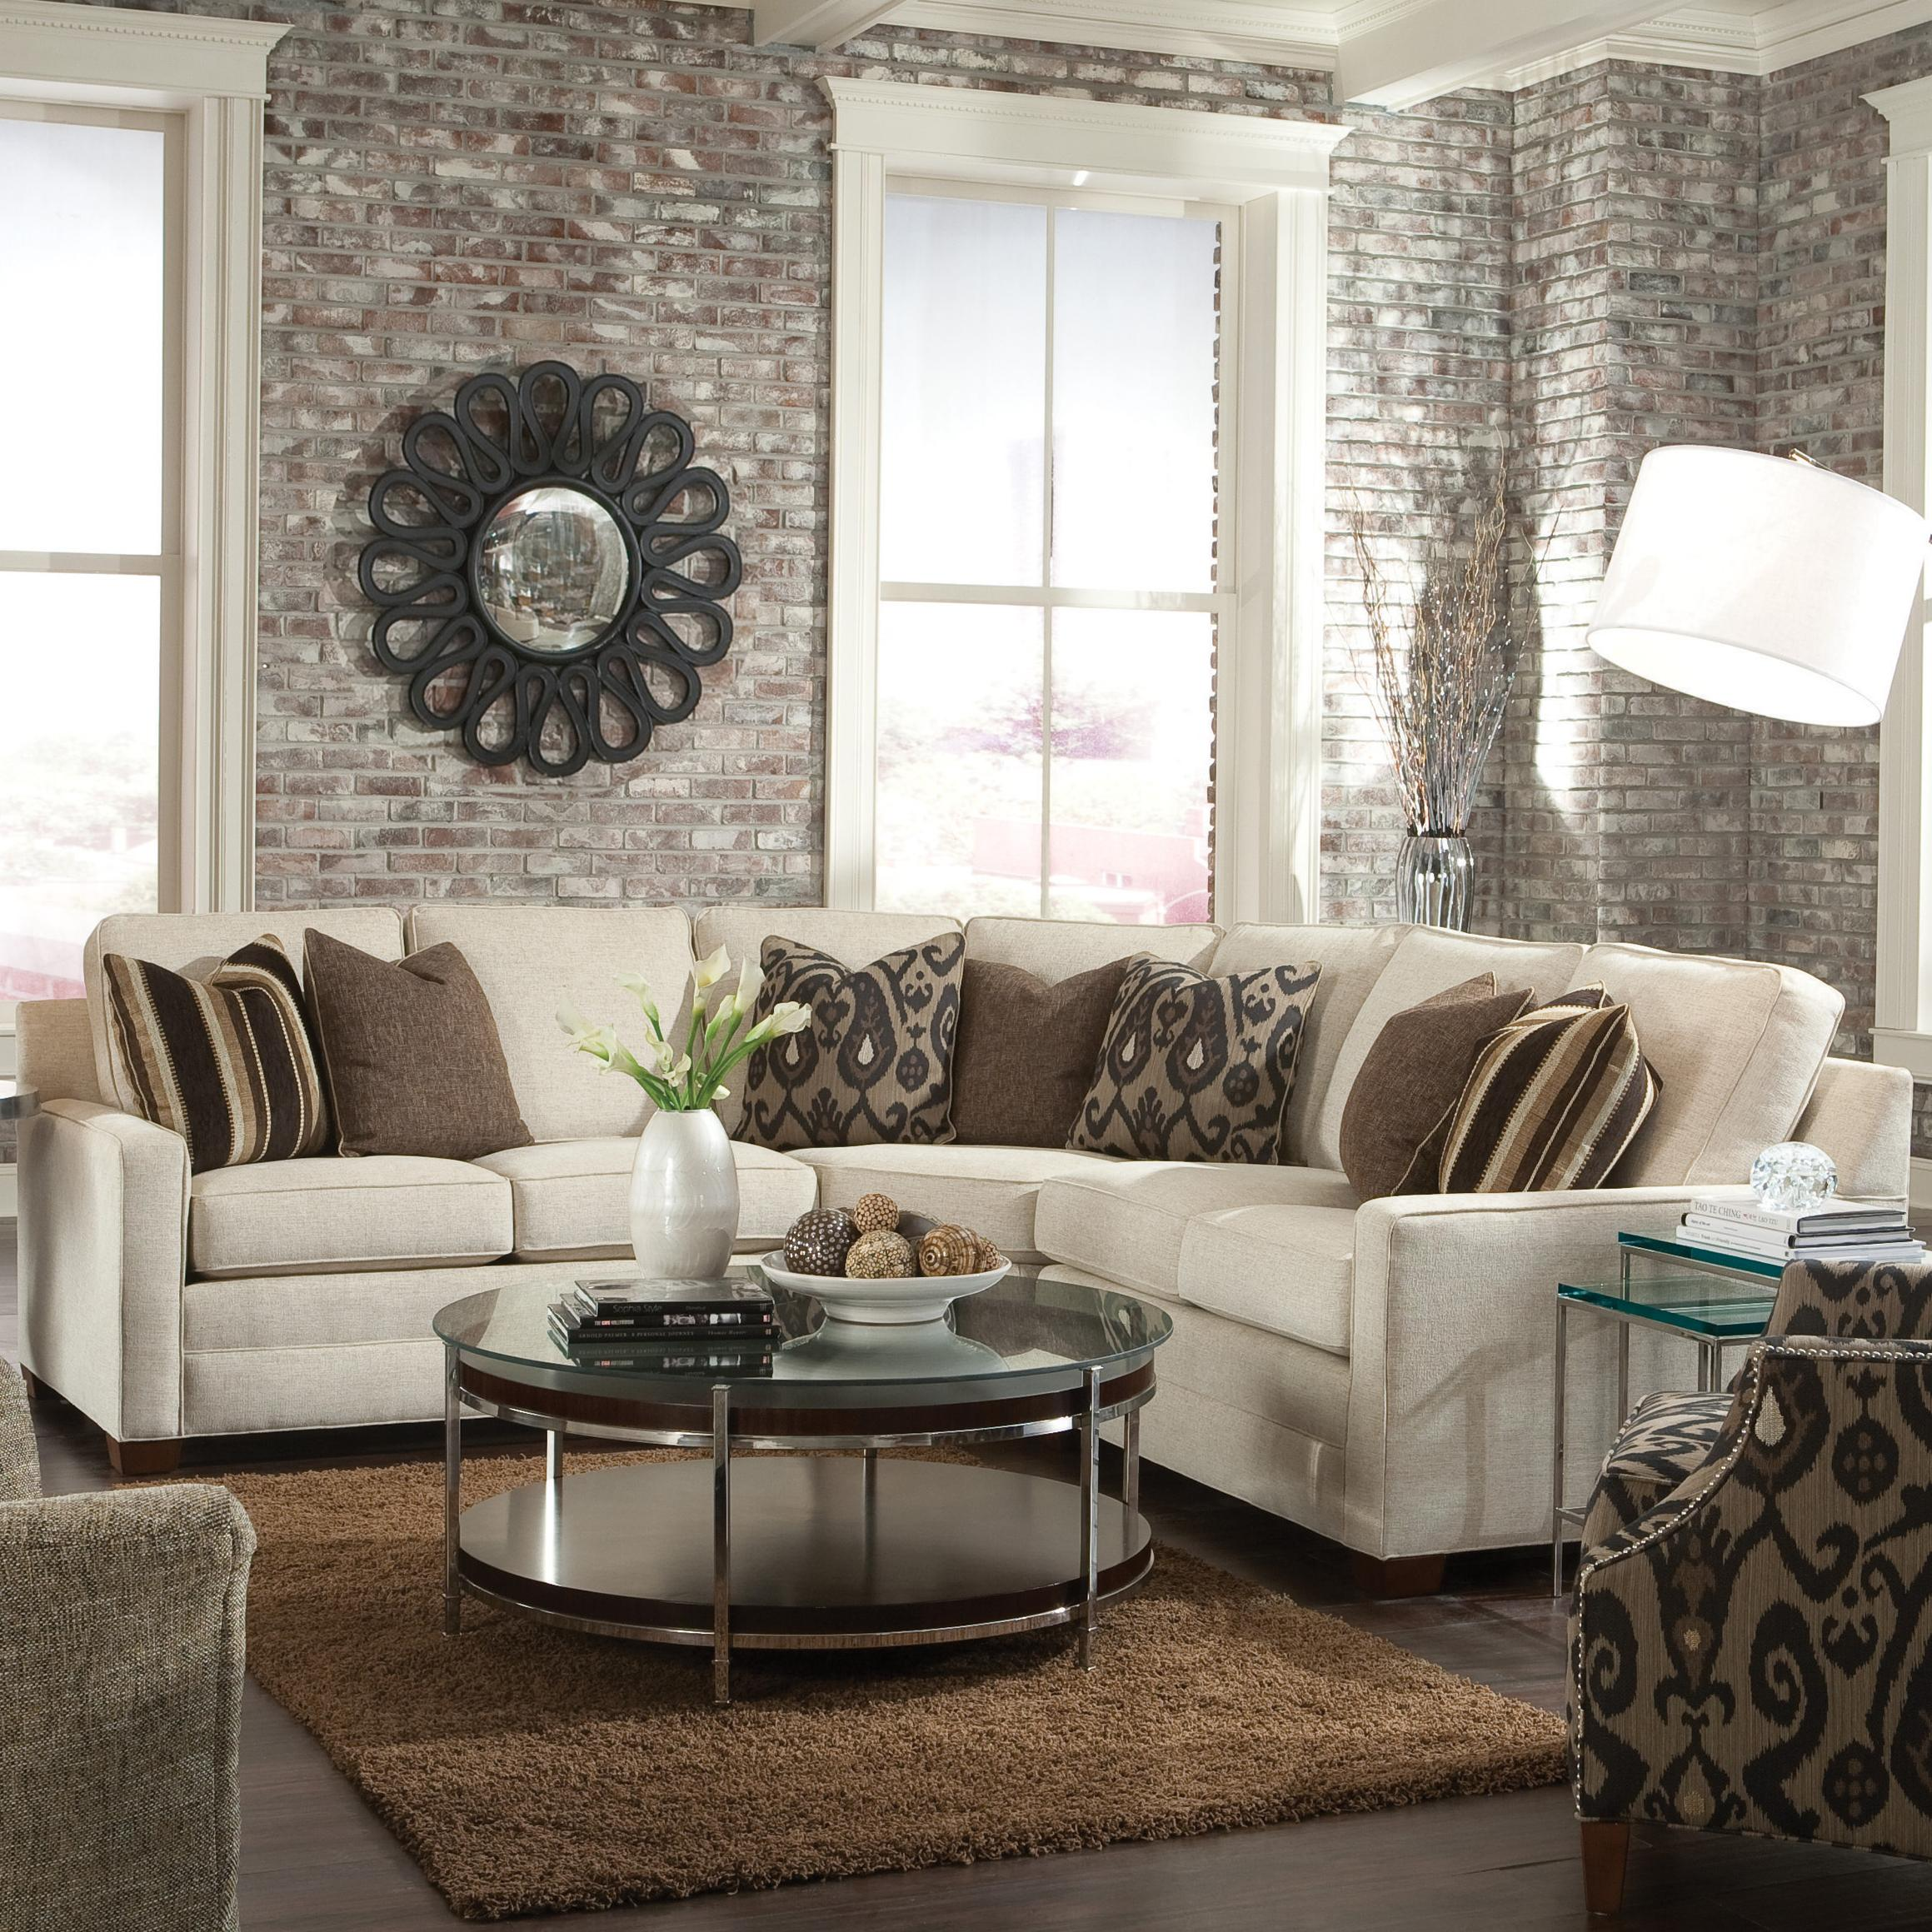 Huntington Home Products Huntington House 2062 Customizable Contemporary Sectional